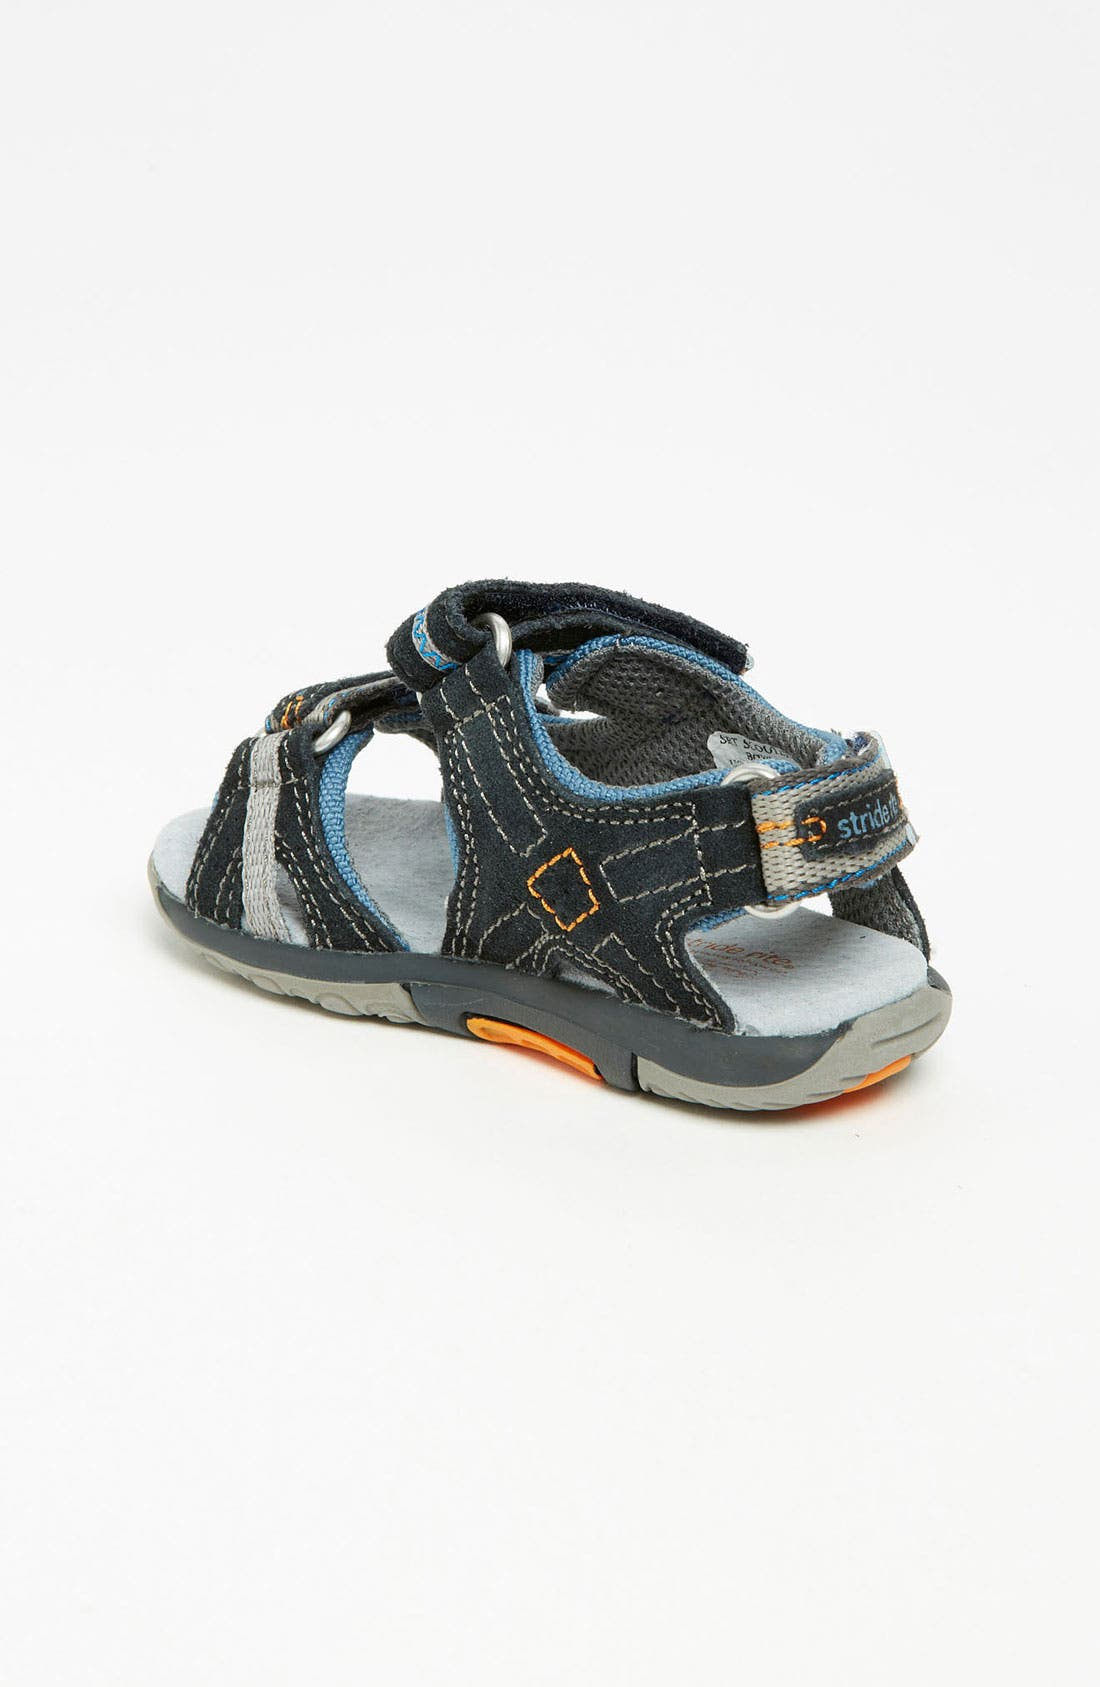 Alternate Image 2  - Stride Rite 'Scooter' Sandal (Baby, Walker & Toddler)